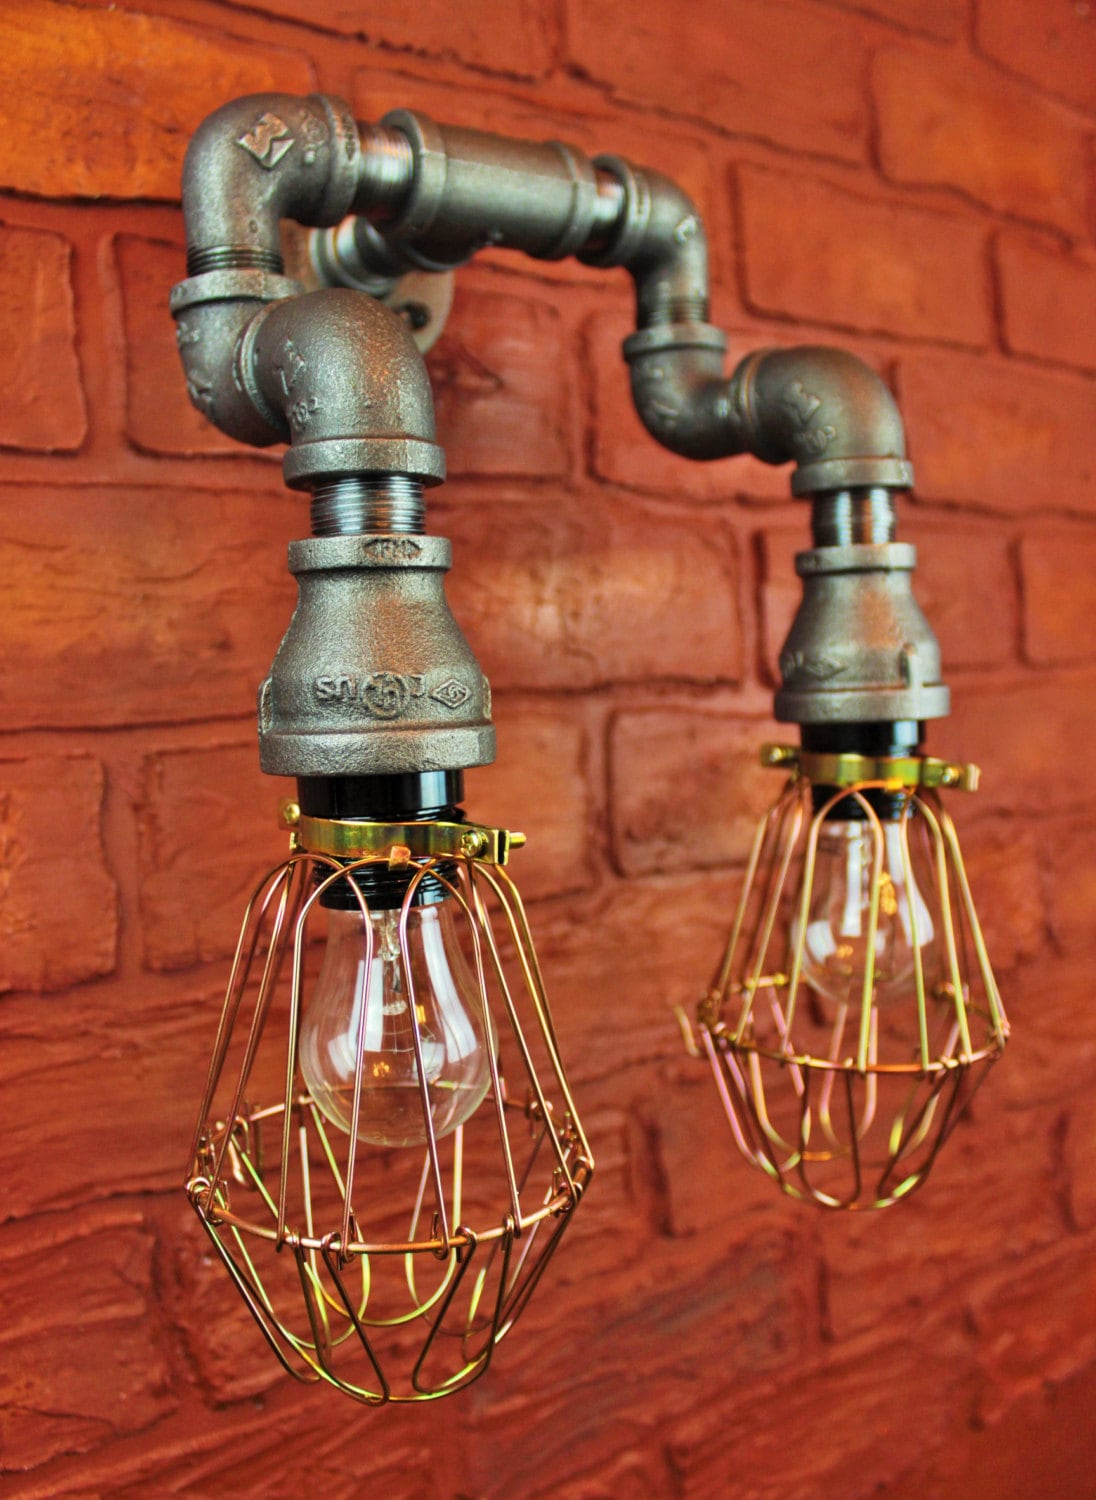 Pipe Lighting Brass Cages Wall Art Steampunk Industrial